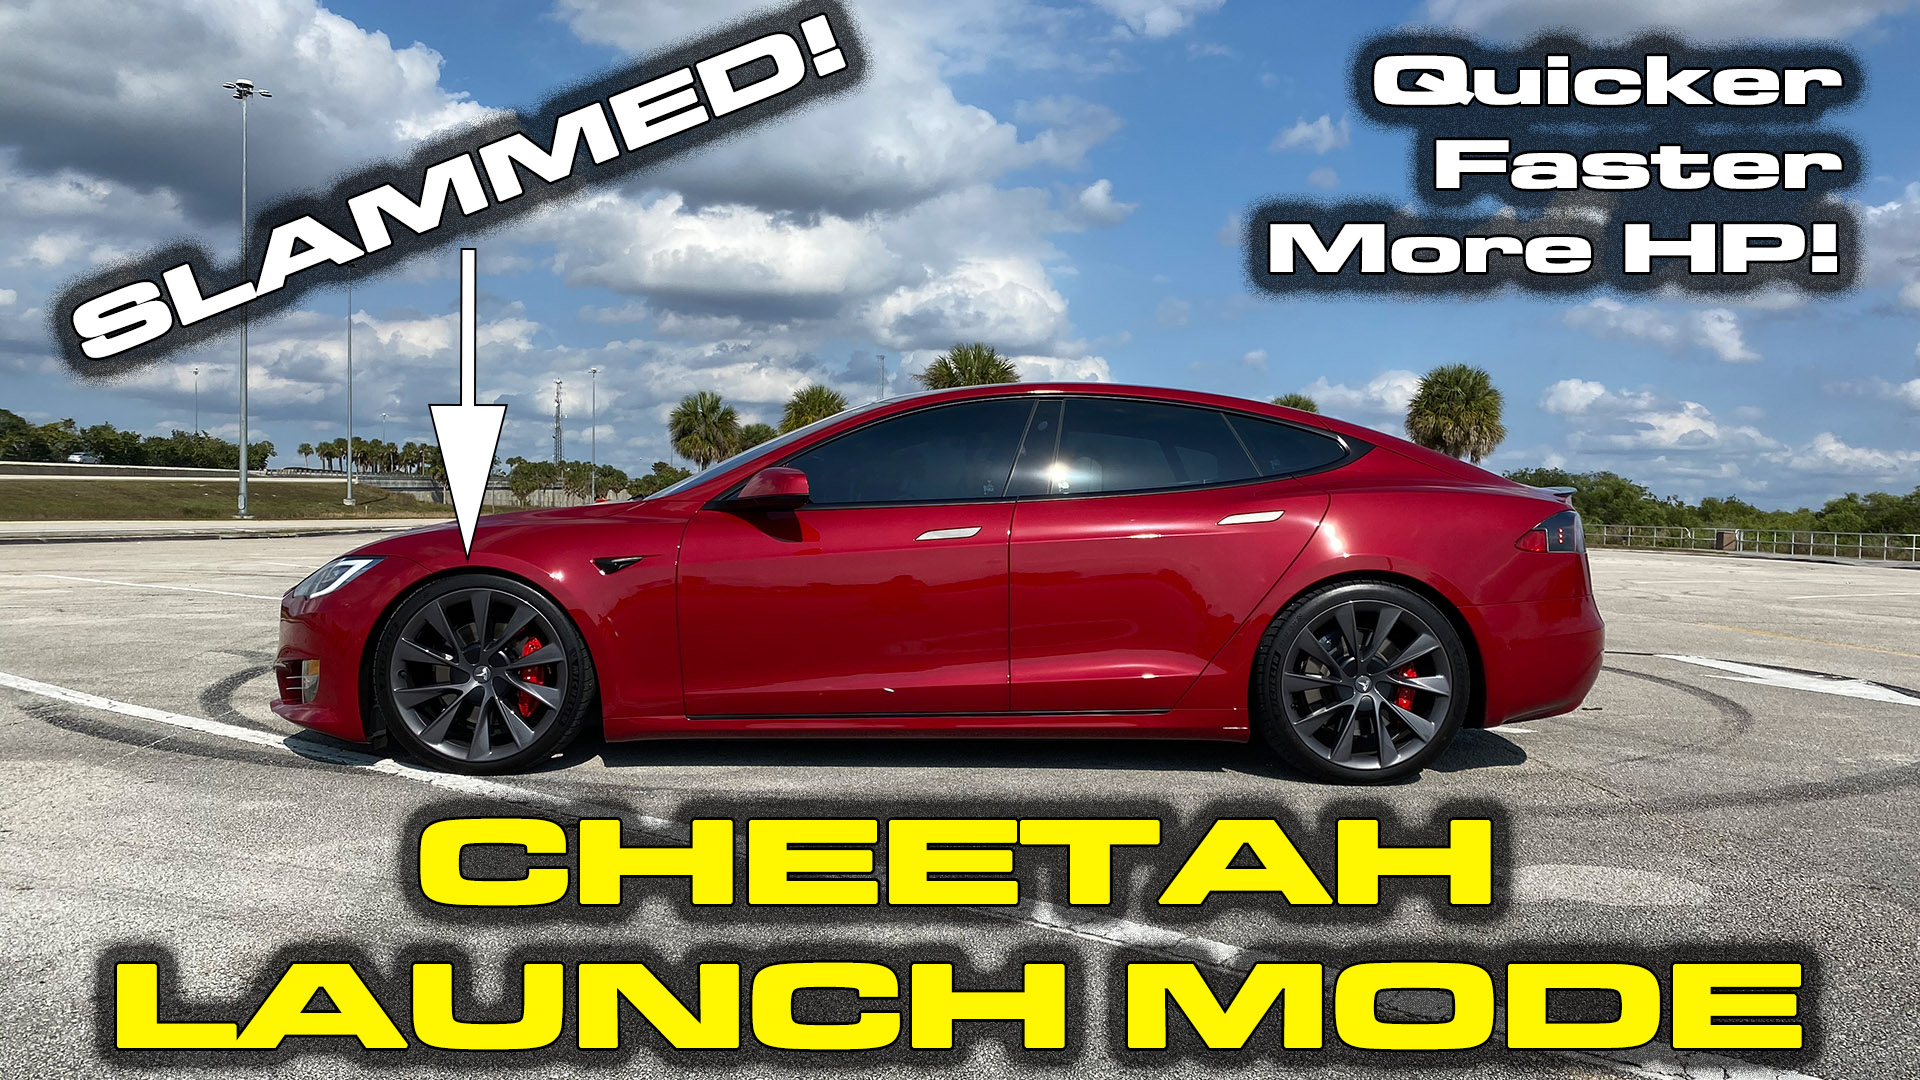 Tesla Cheetah Launch Mode